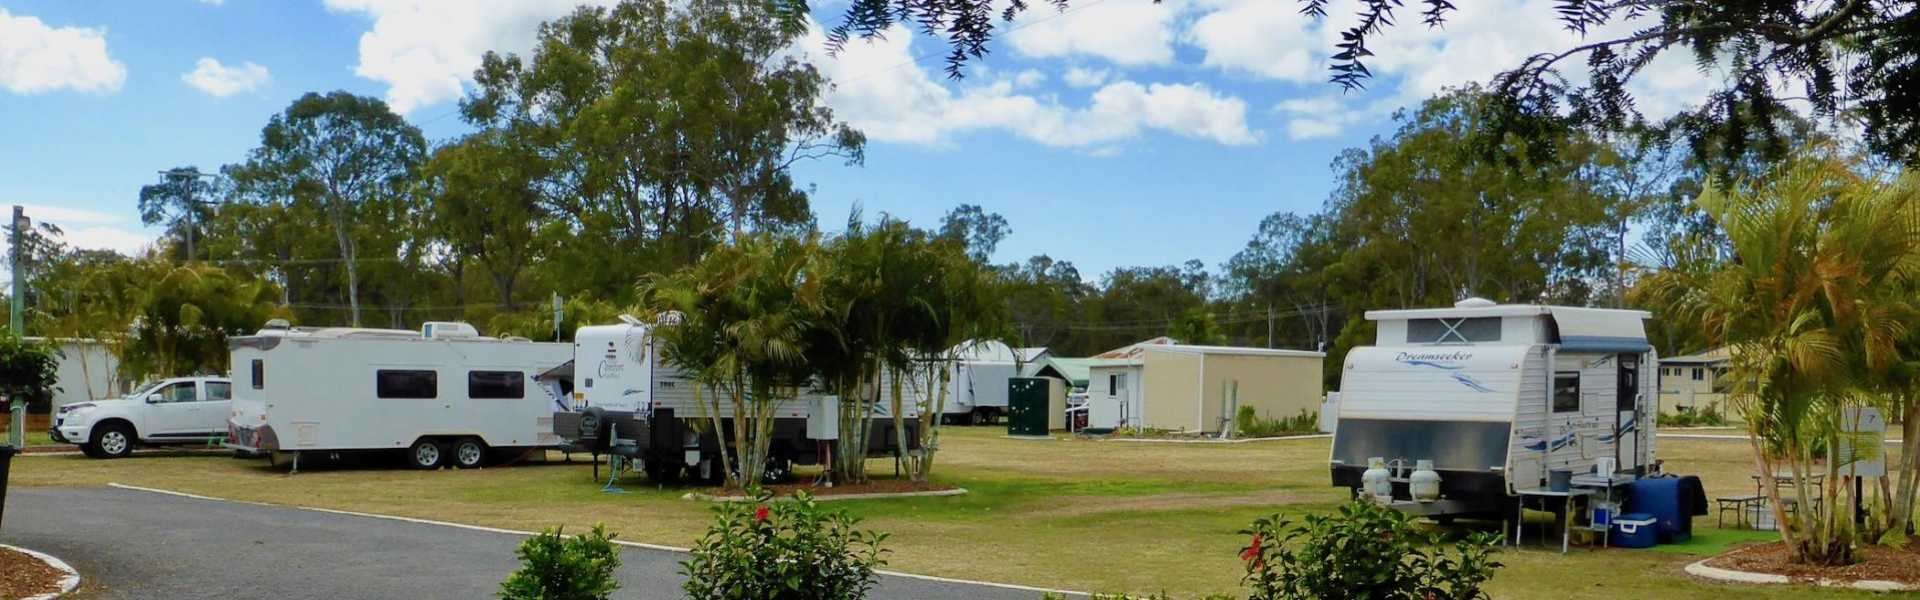 Burrum River Caravan Park, Howard, Kui Parks, Sites